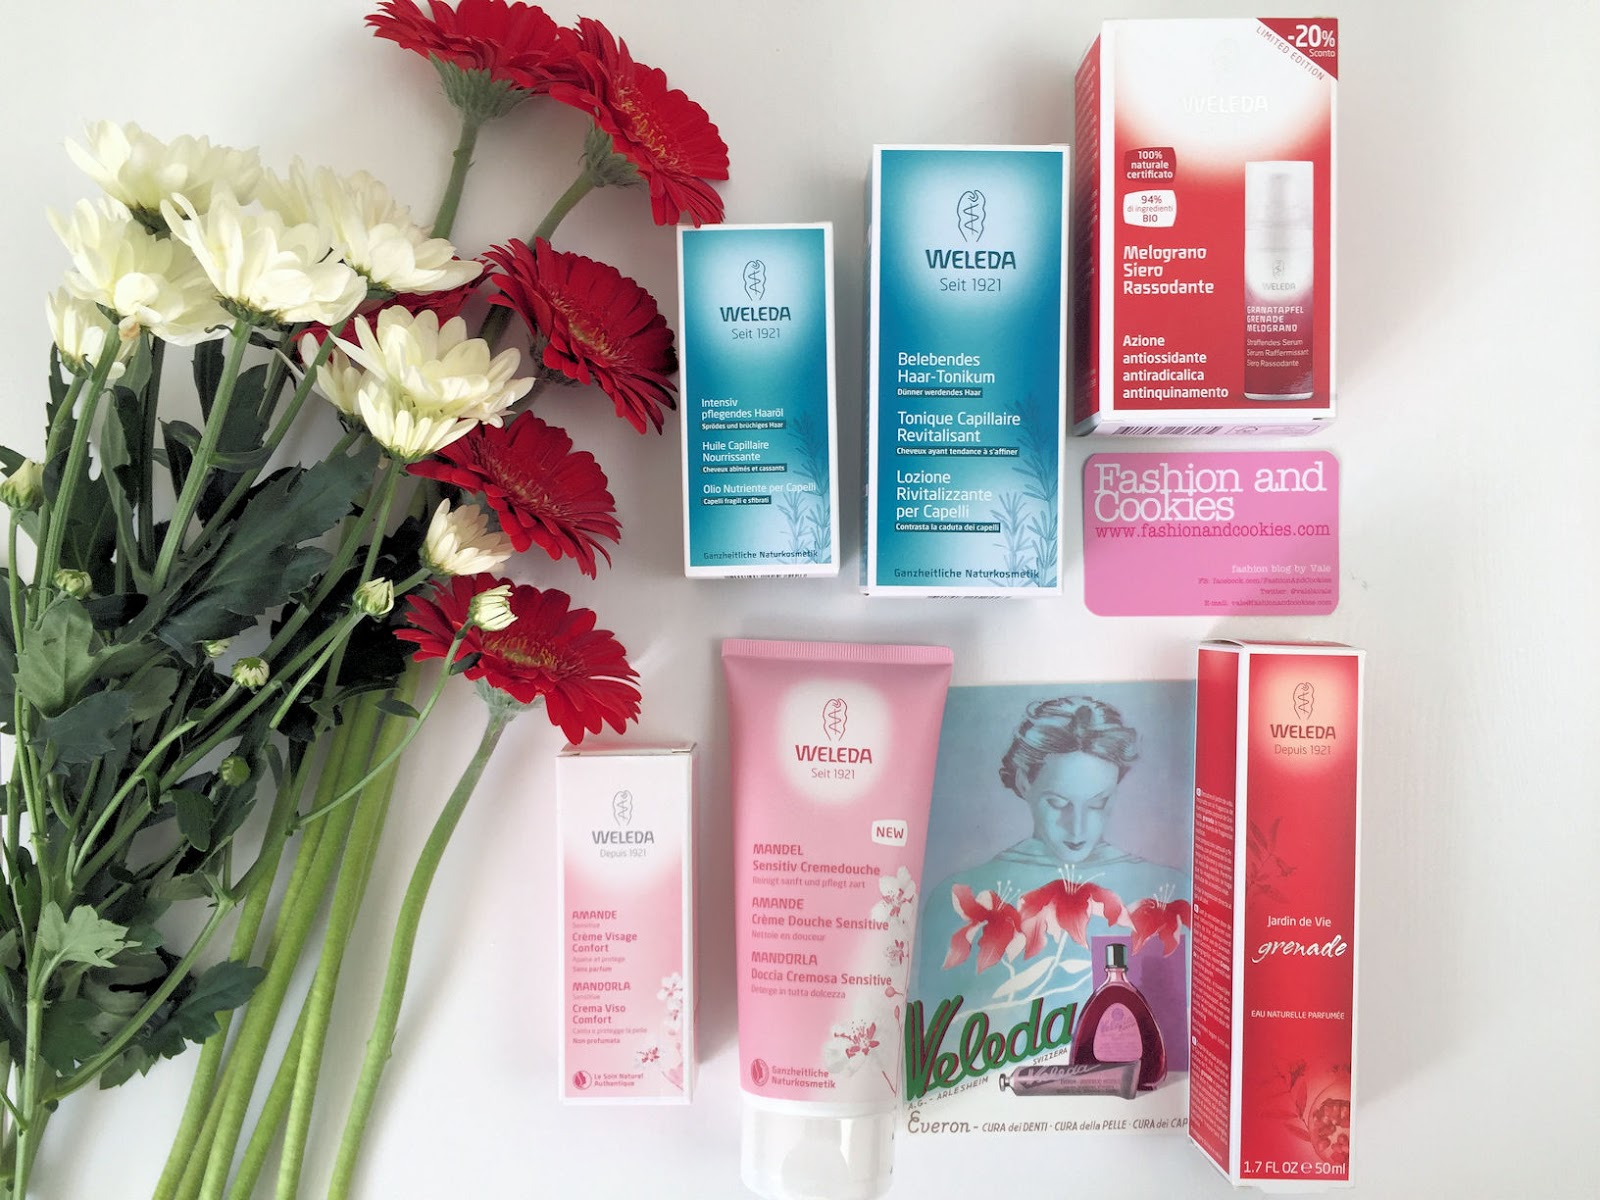 Weleda Natural & Organic Cosmetics haul and review on Fashion and Cookies beauty blog, beauty blogger